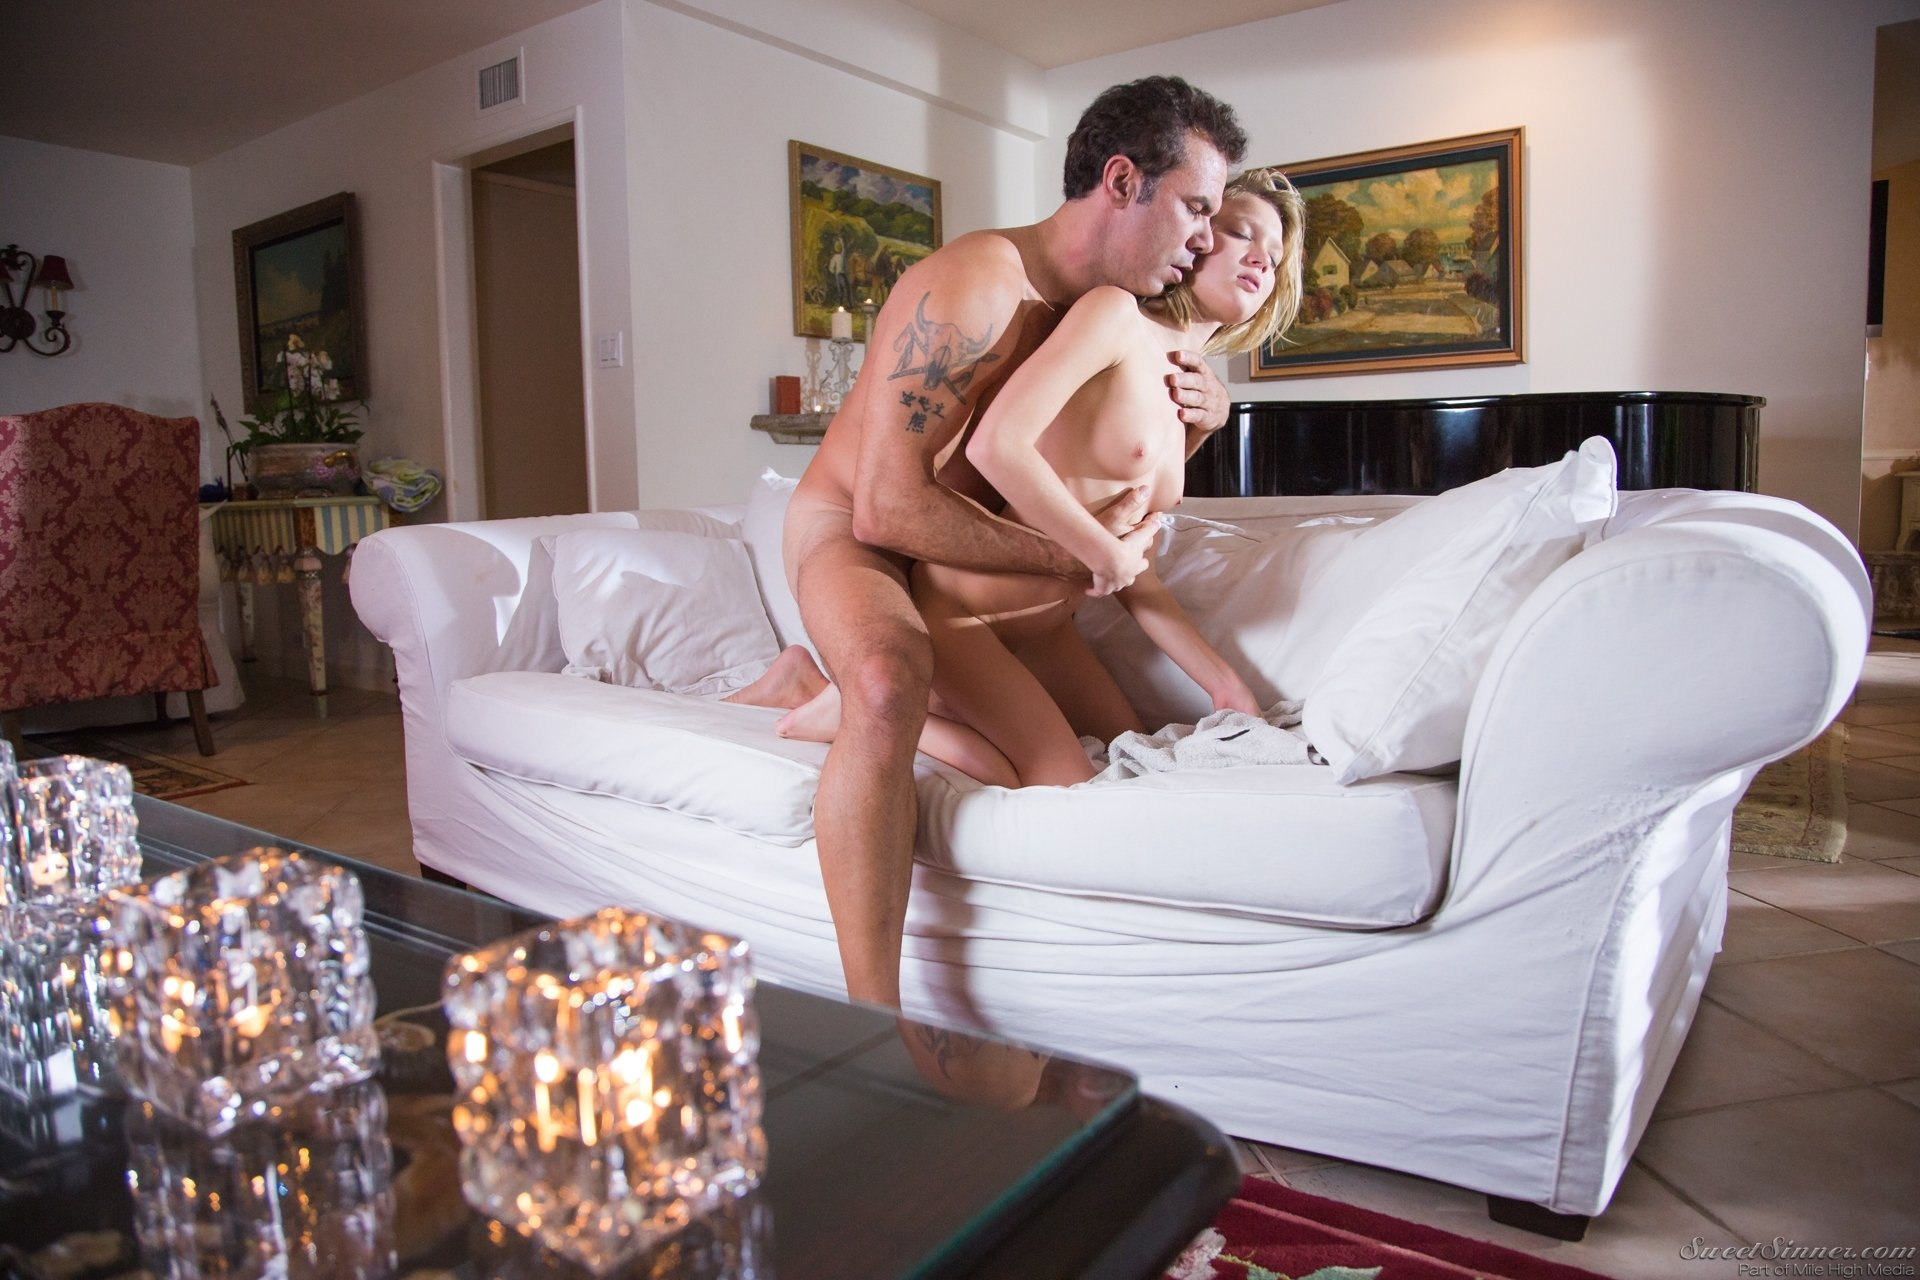 free mature hardcore movies college girls having sex for the first time